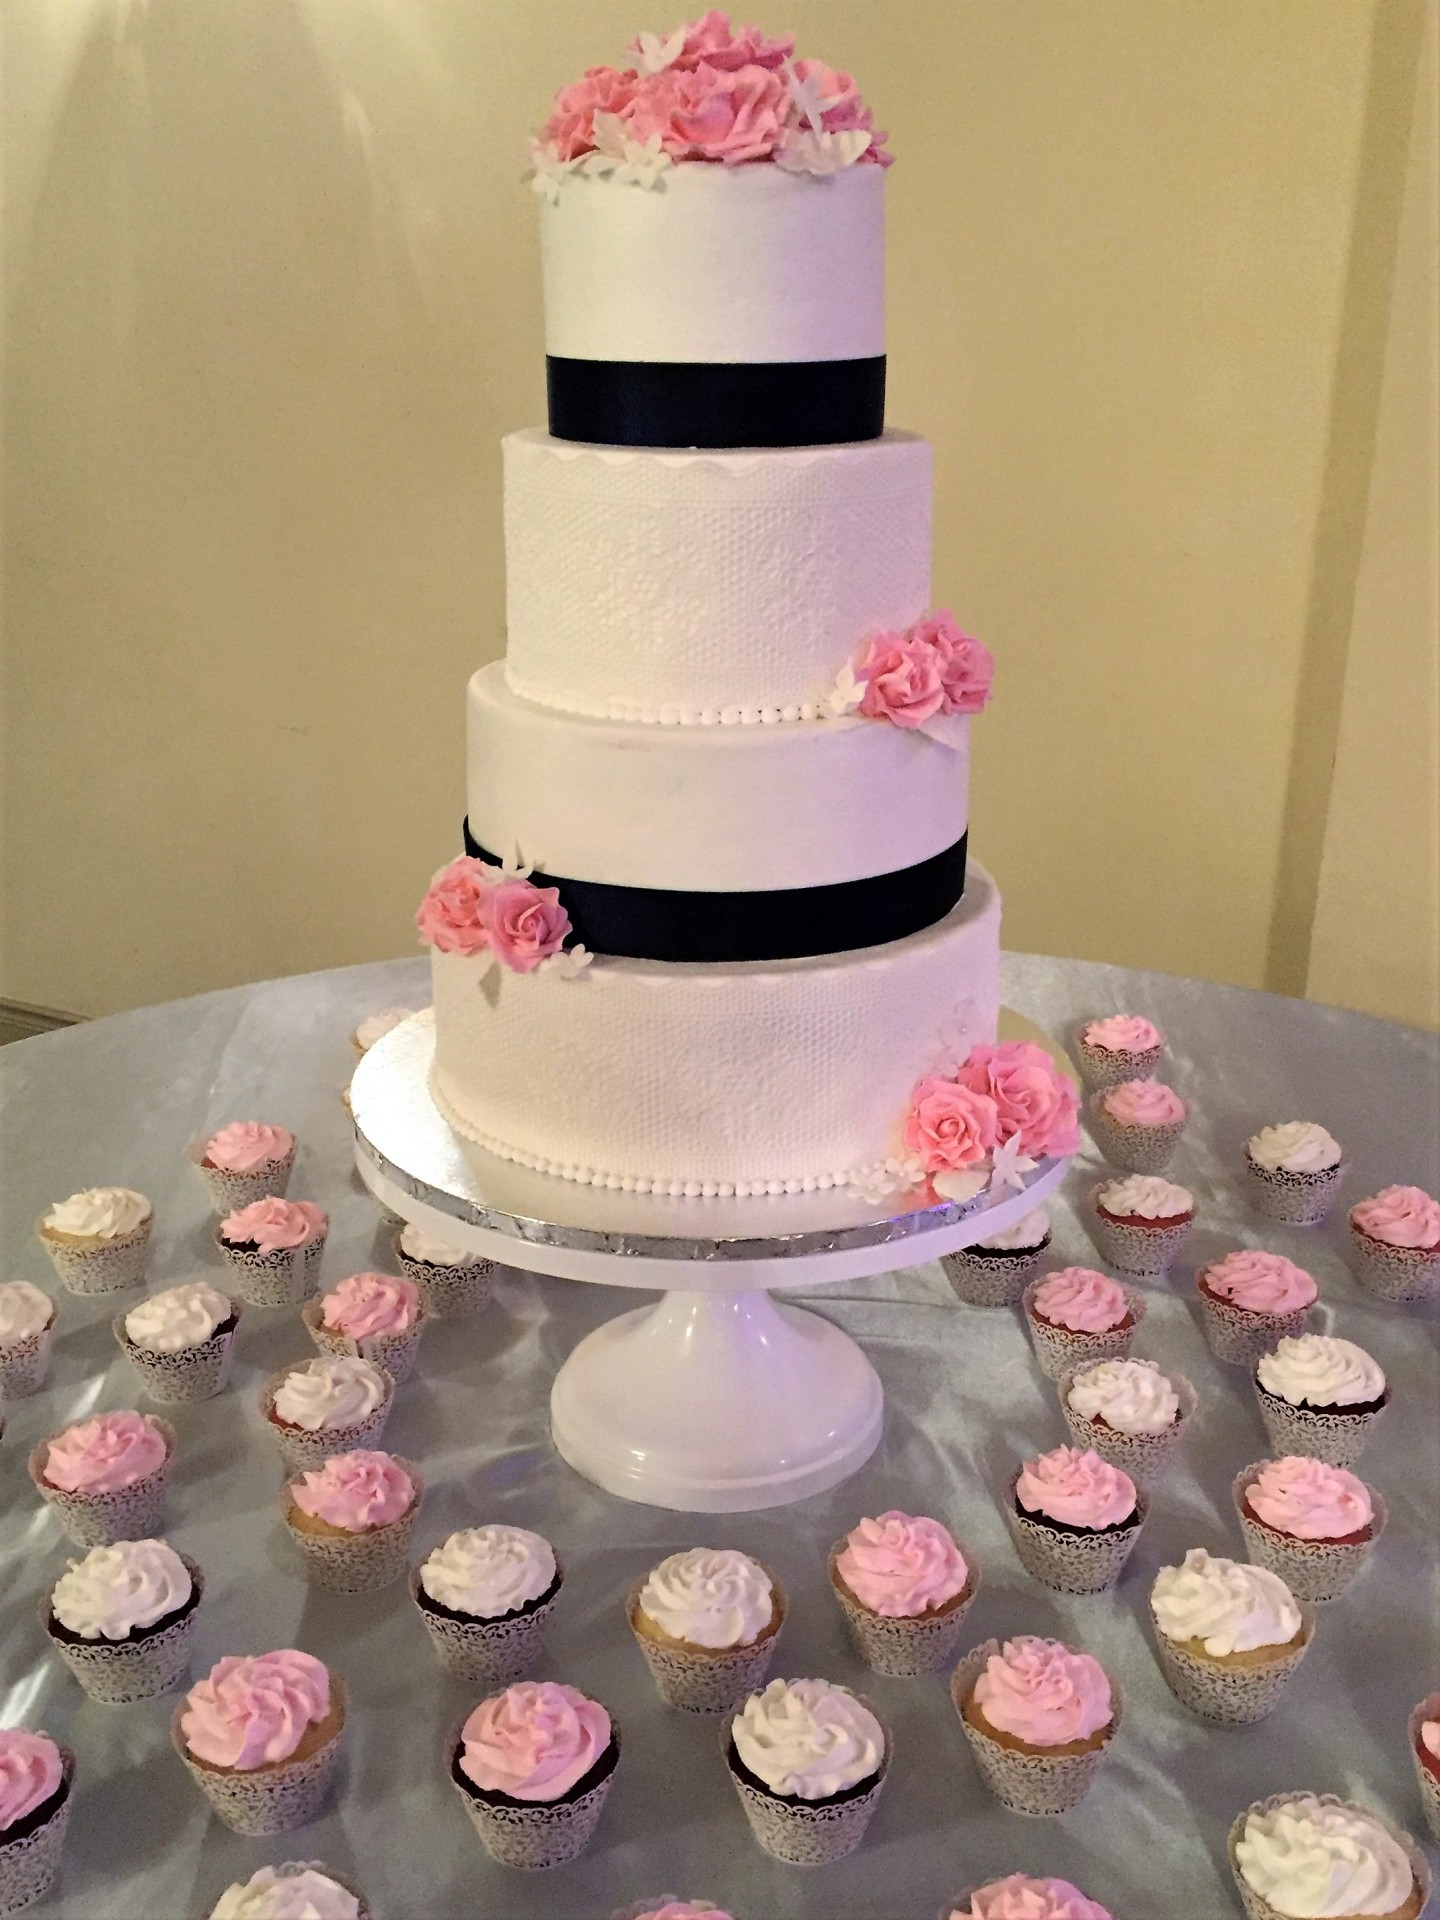 Lace and pink roses with cupcakes